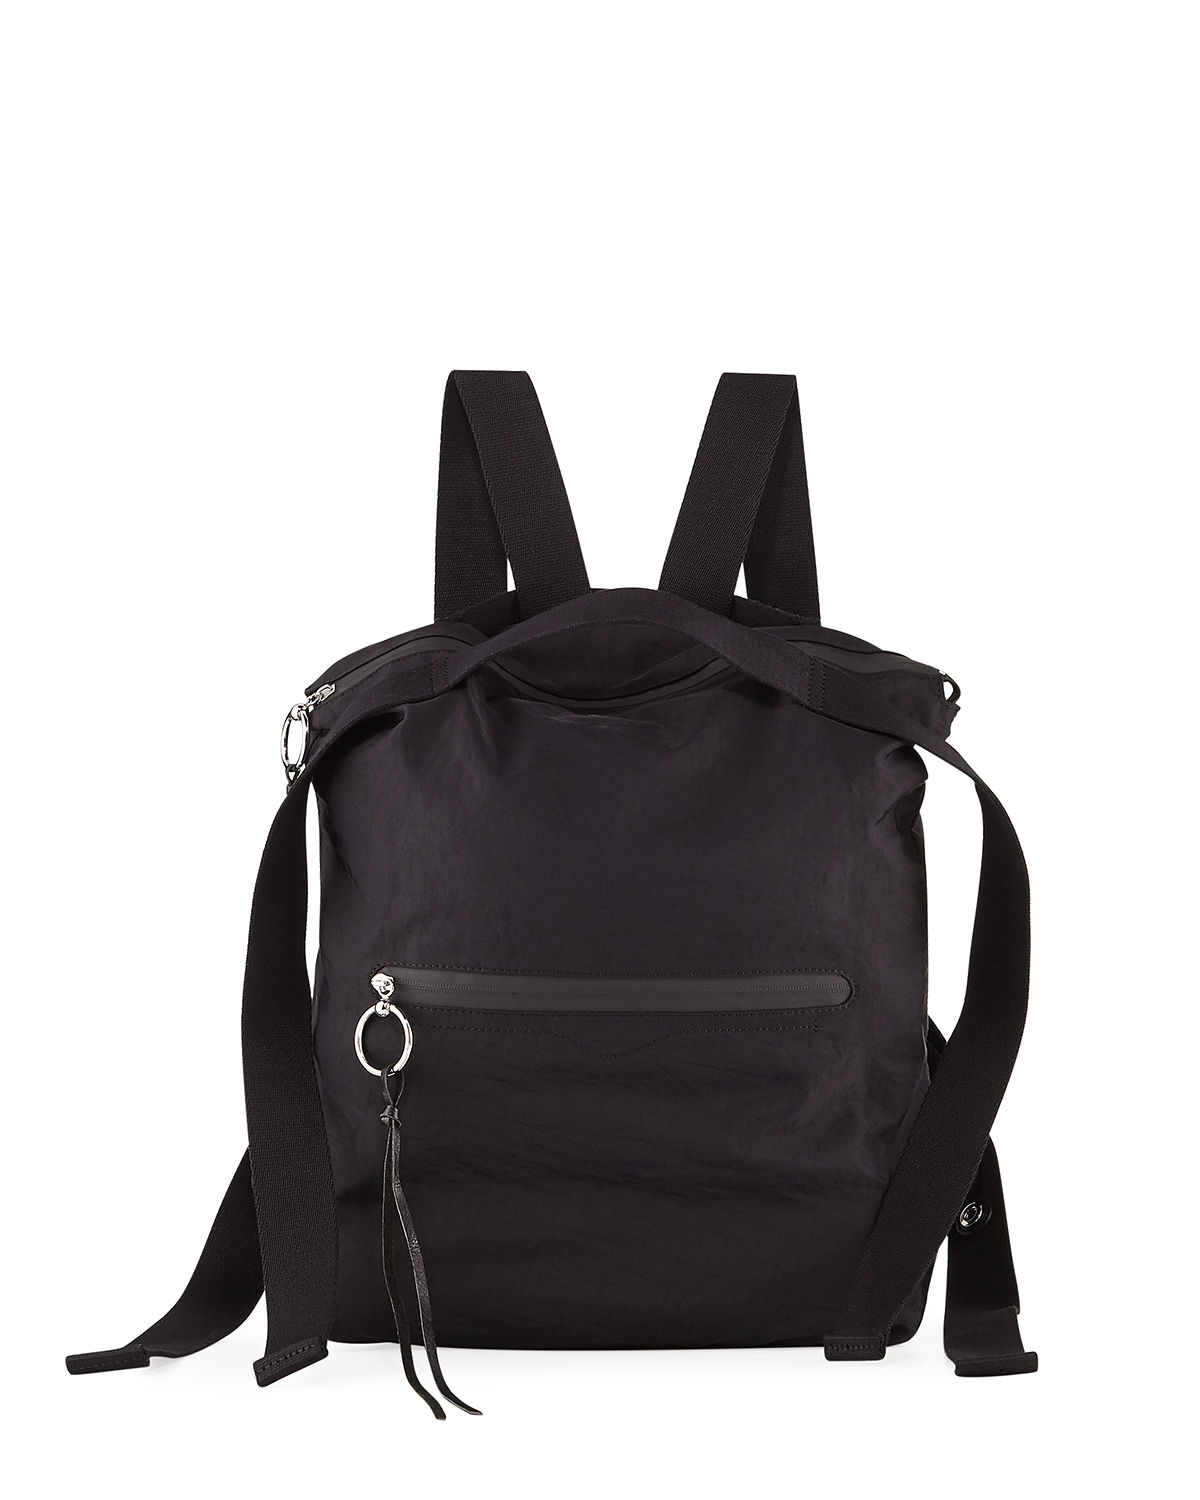 Distressed Nylon Tote Backpack